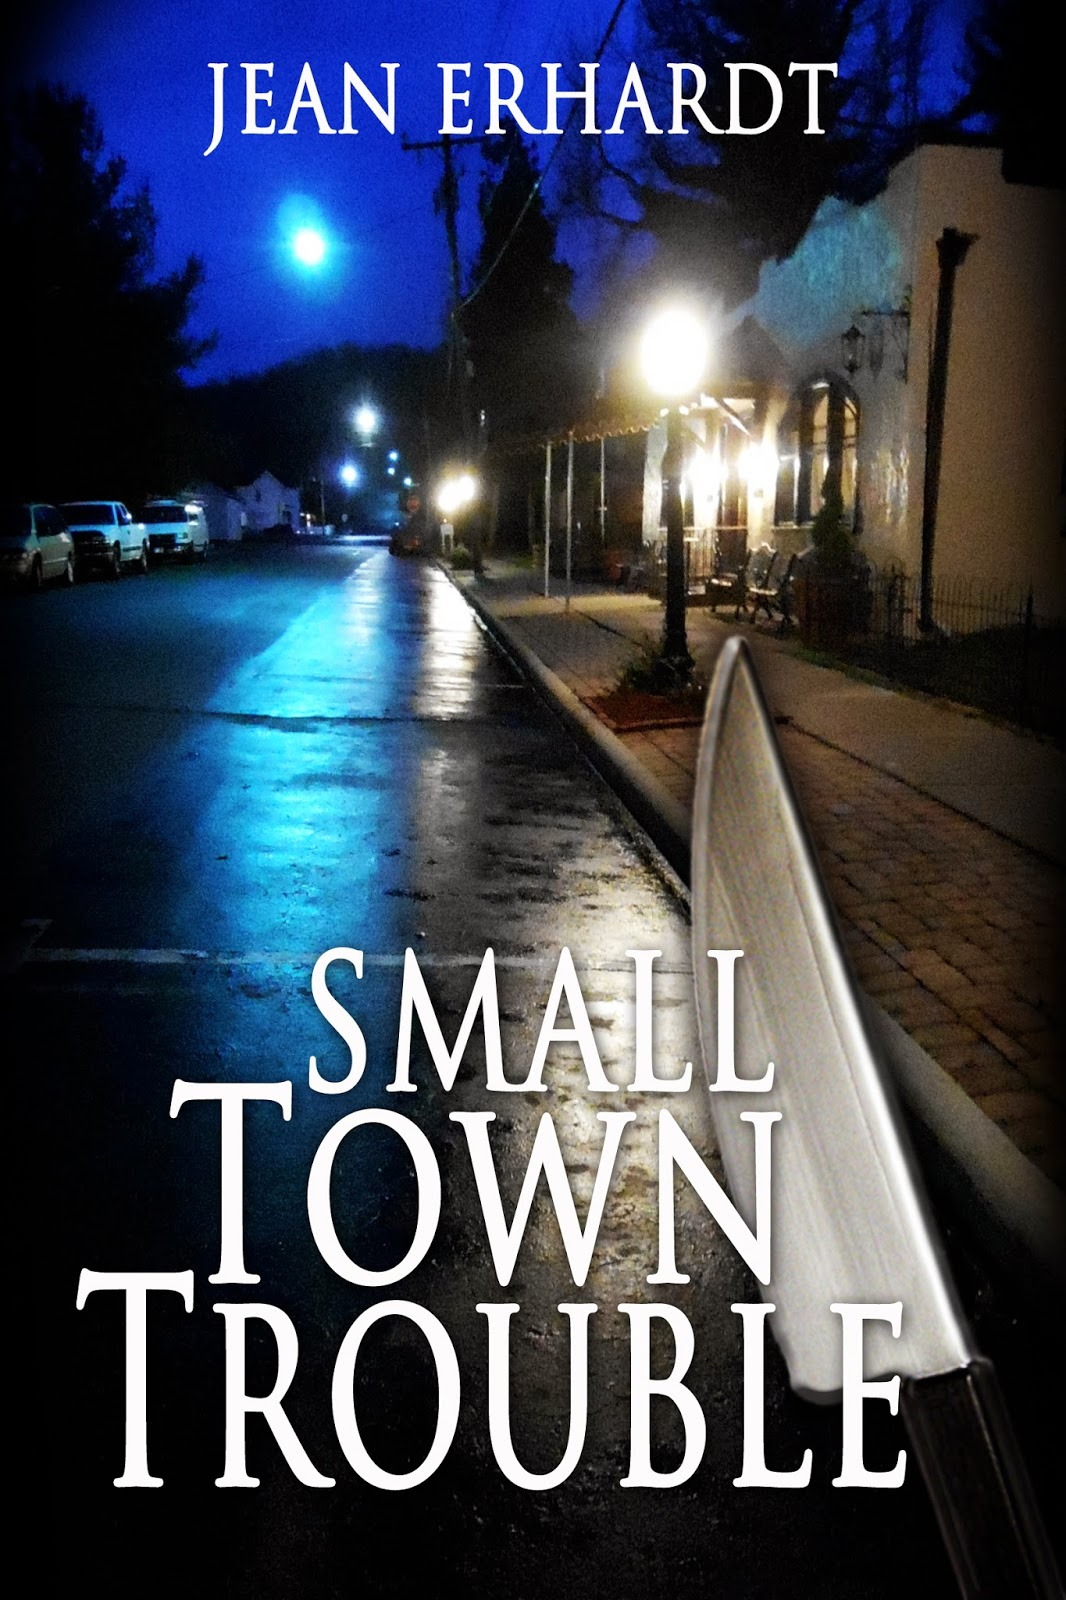 http://www.amazon.com/Small-Town-Trouble-Jean-Erhardt-ebook/dp/B00COEGW16/ref=sr_1_1?s=books&ie=UTF8&qid=1391478969&sr=1-1&keywords=Jean+Erhardt